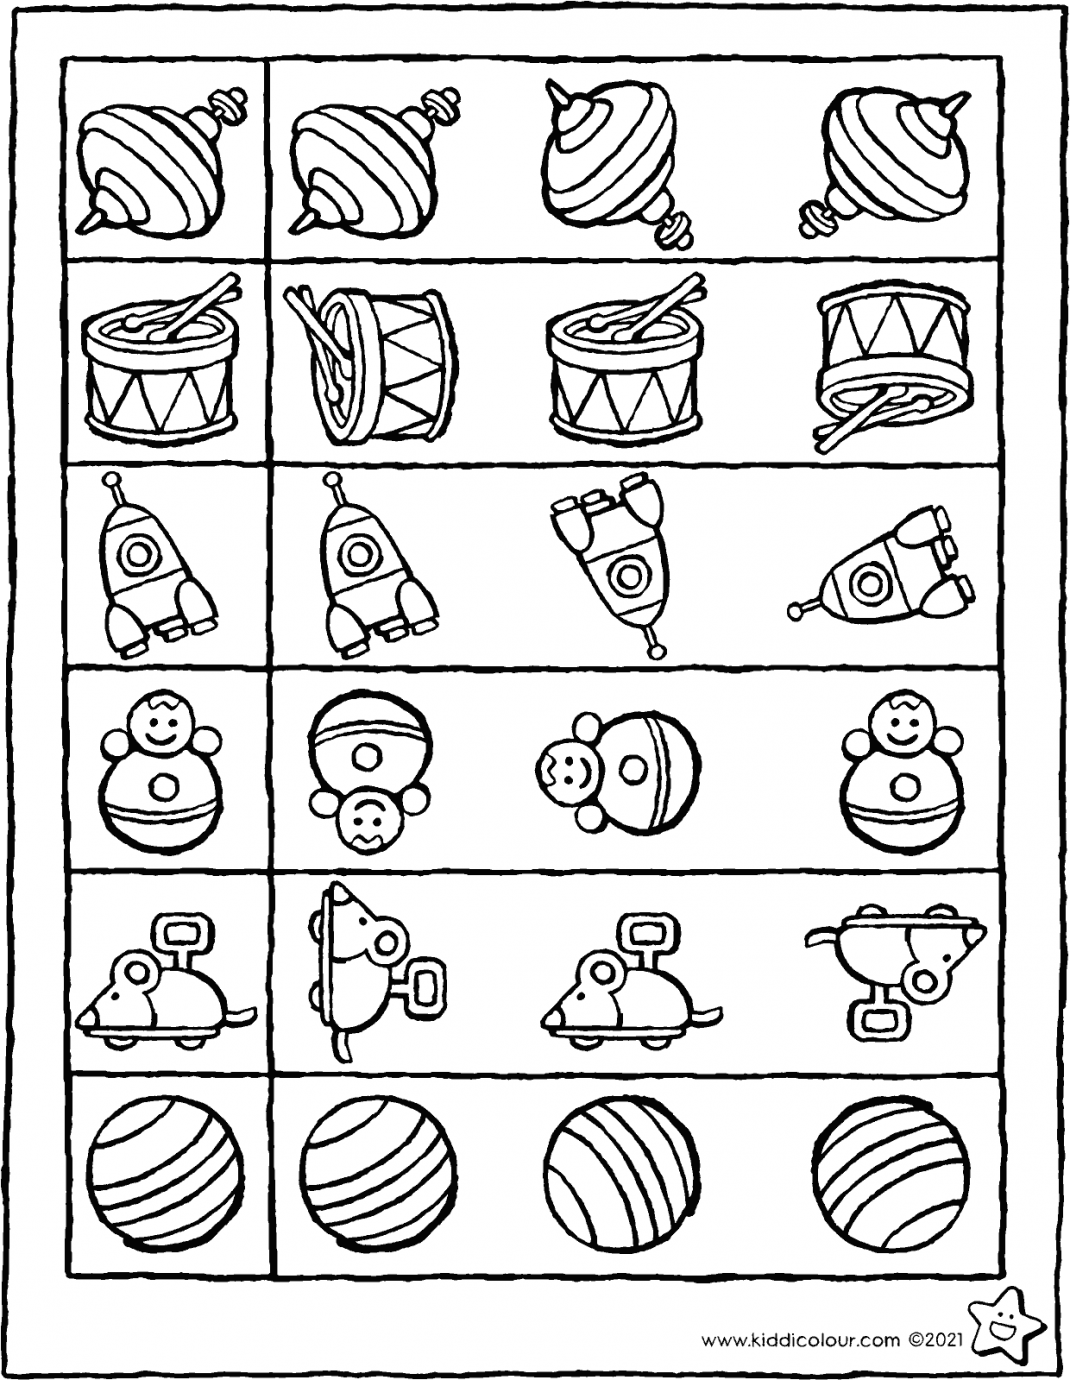 colour in the toy that's identical to the one in the square colouring page drawing picture 01V